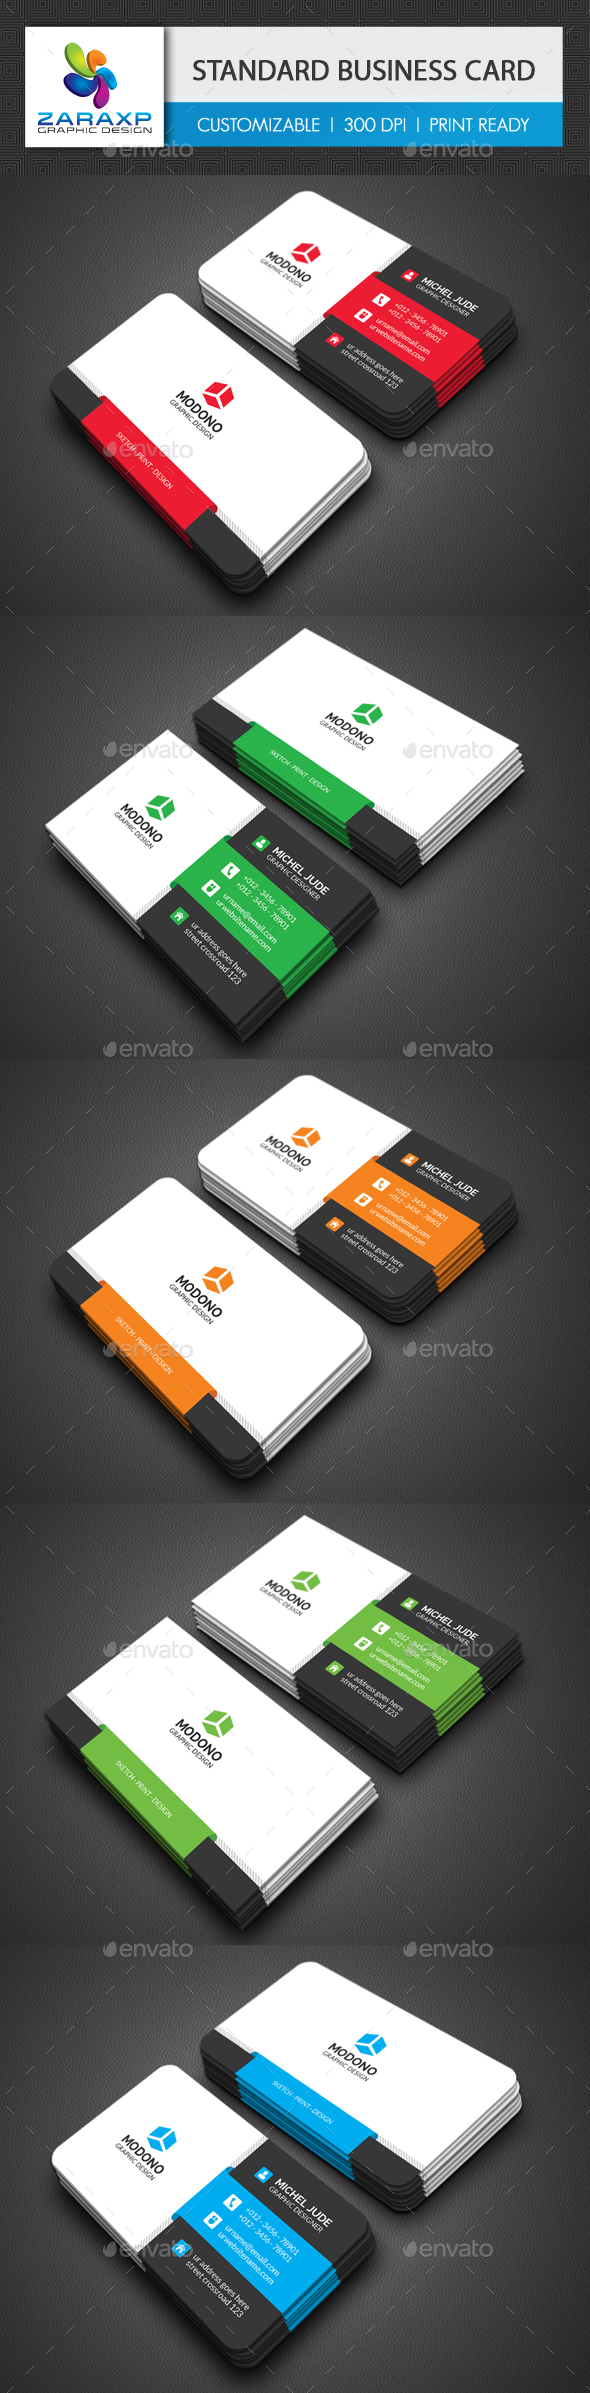 Standard business card template psd download here http standard business card template psd download here httpgraphicriver reheart